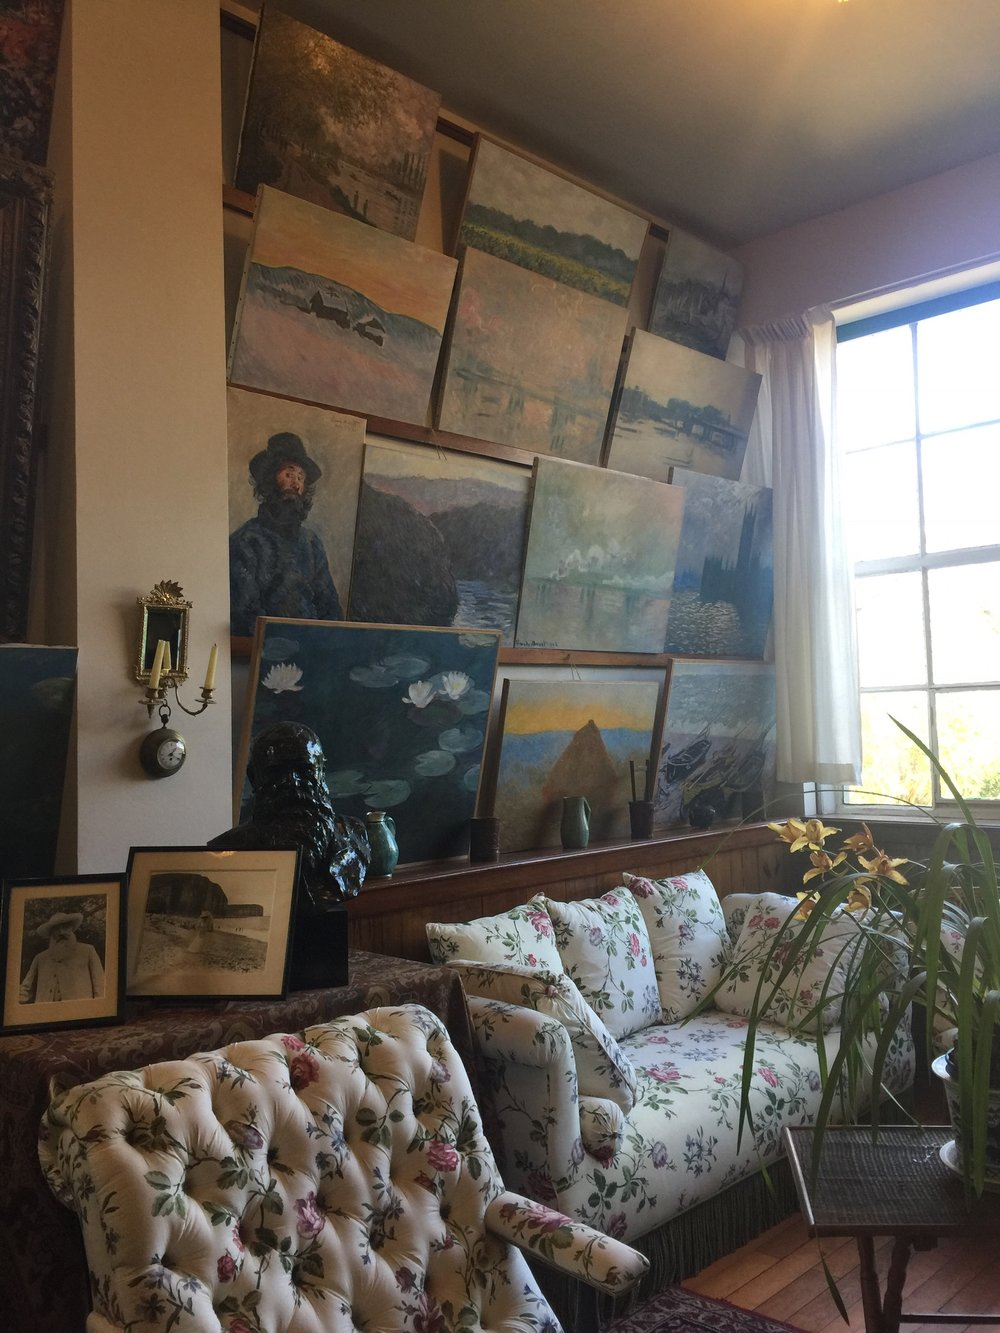 Monet's home studio with replica paintings